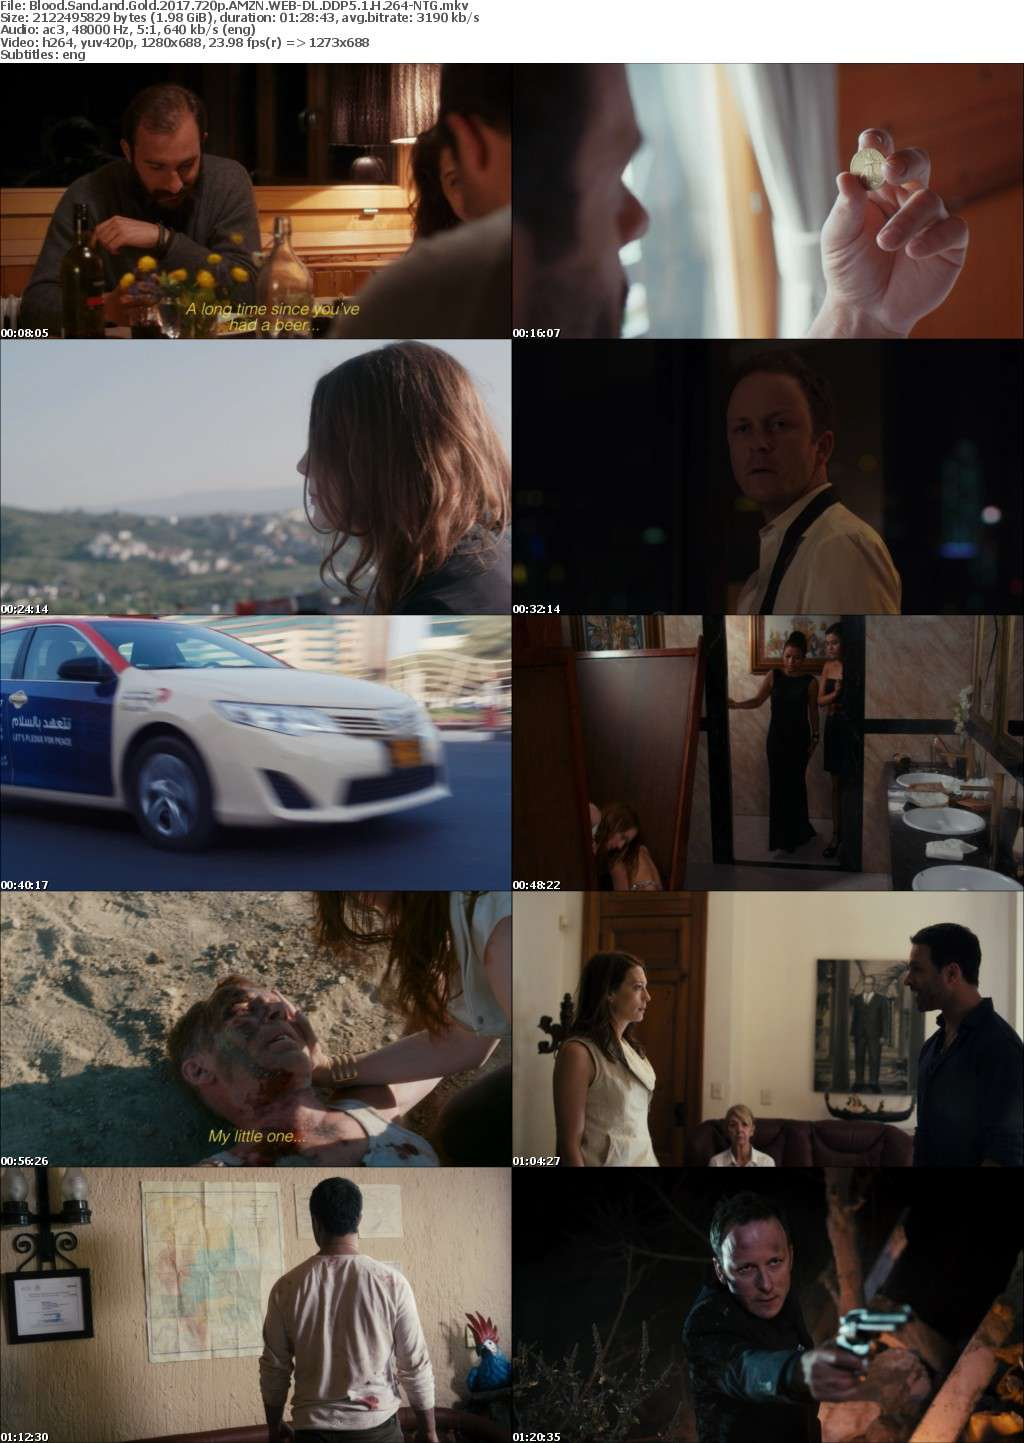 Blood Sand and Gold (2017) 720p AMZN WEB-DL DDP5 1 H 264-NTG